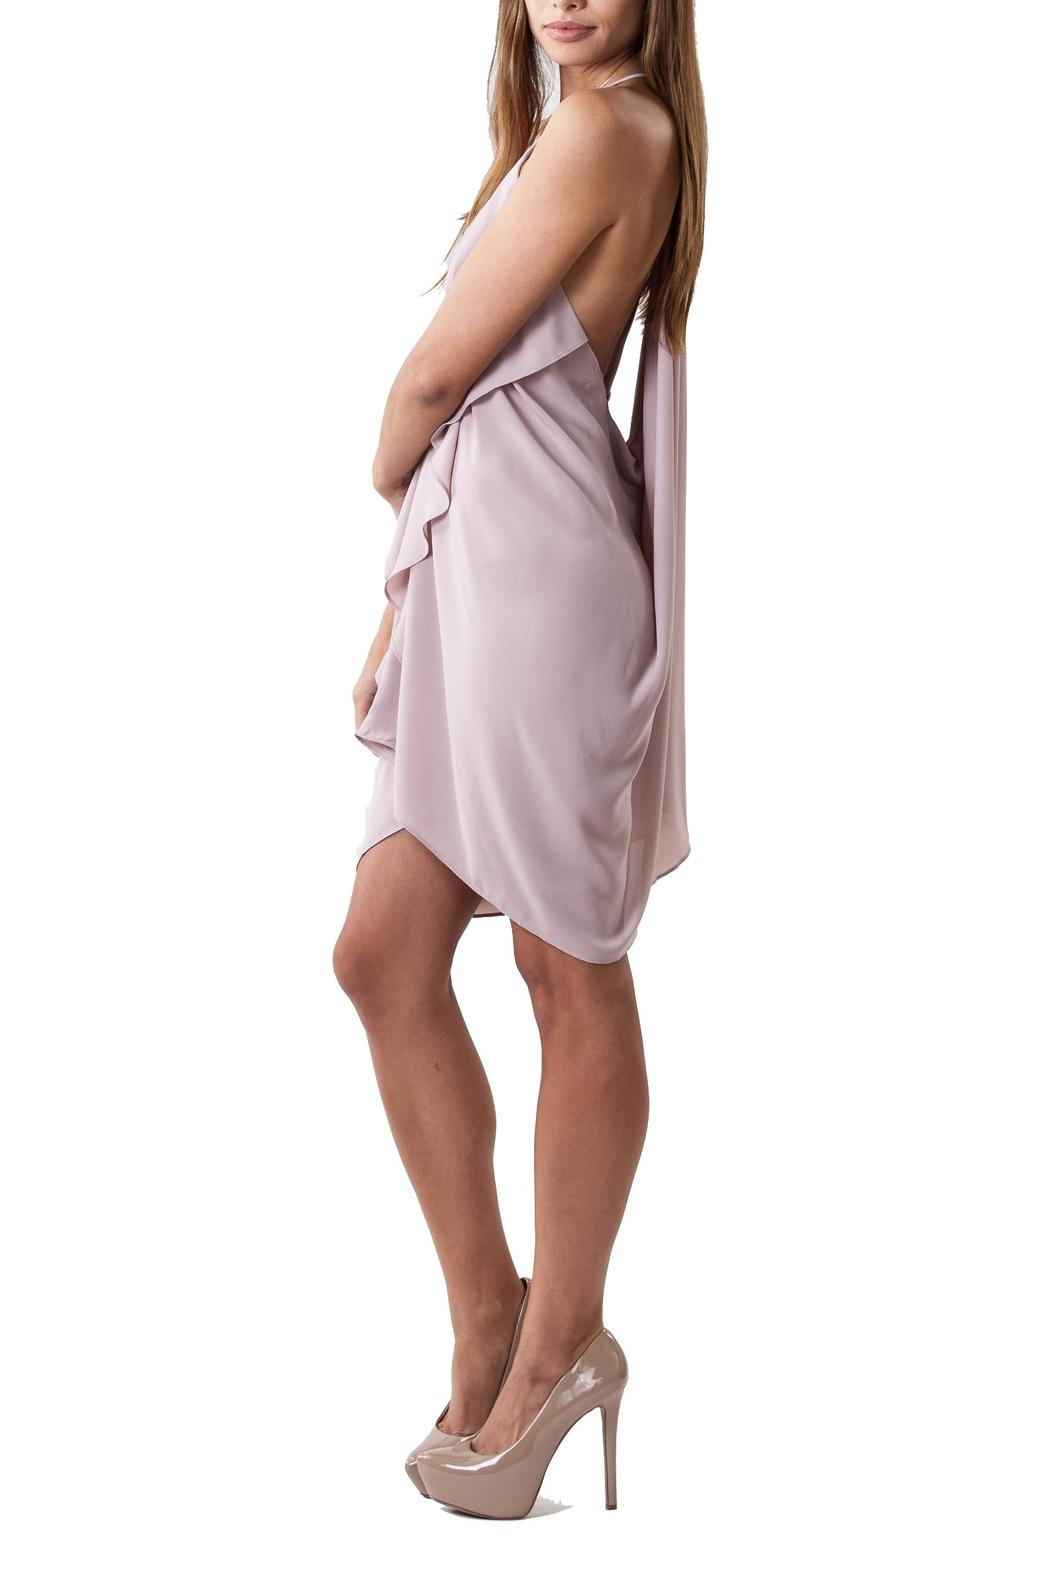 Olivaceous Angel Wing Dress From Honolulu By Cookie S Clothing Co Shoptiques